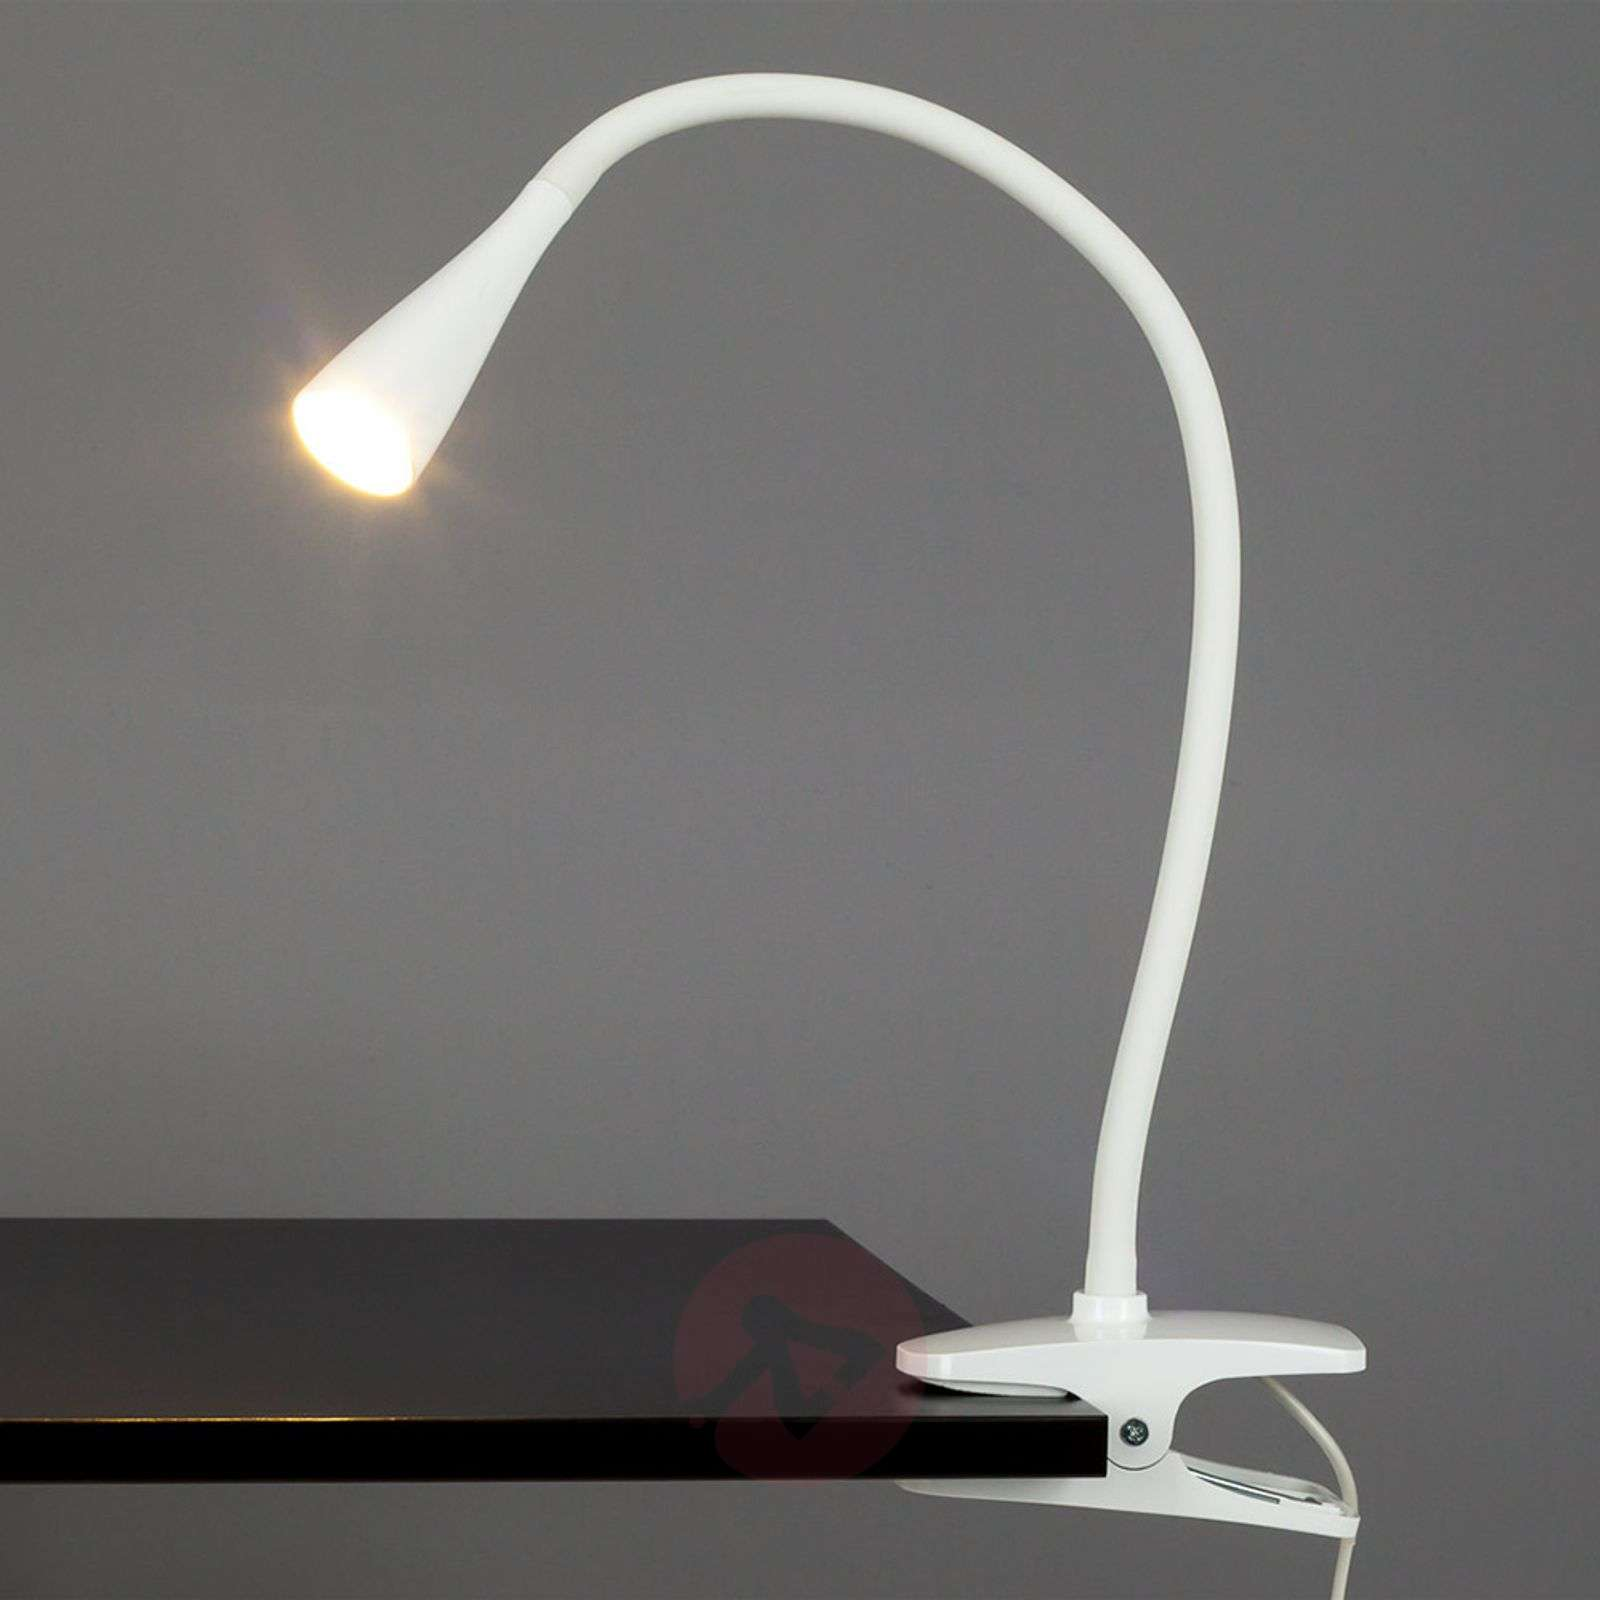 Smalle LED-klemlamp Baris in het wit-9643006-01